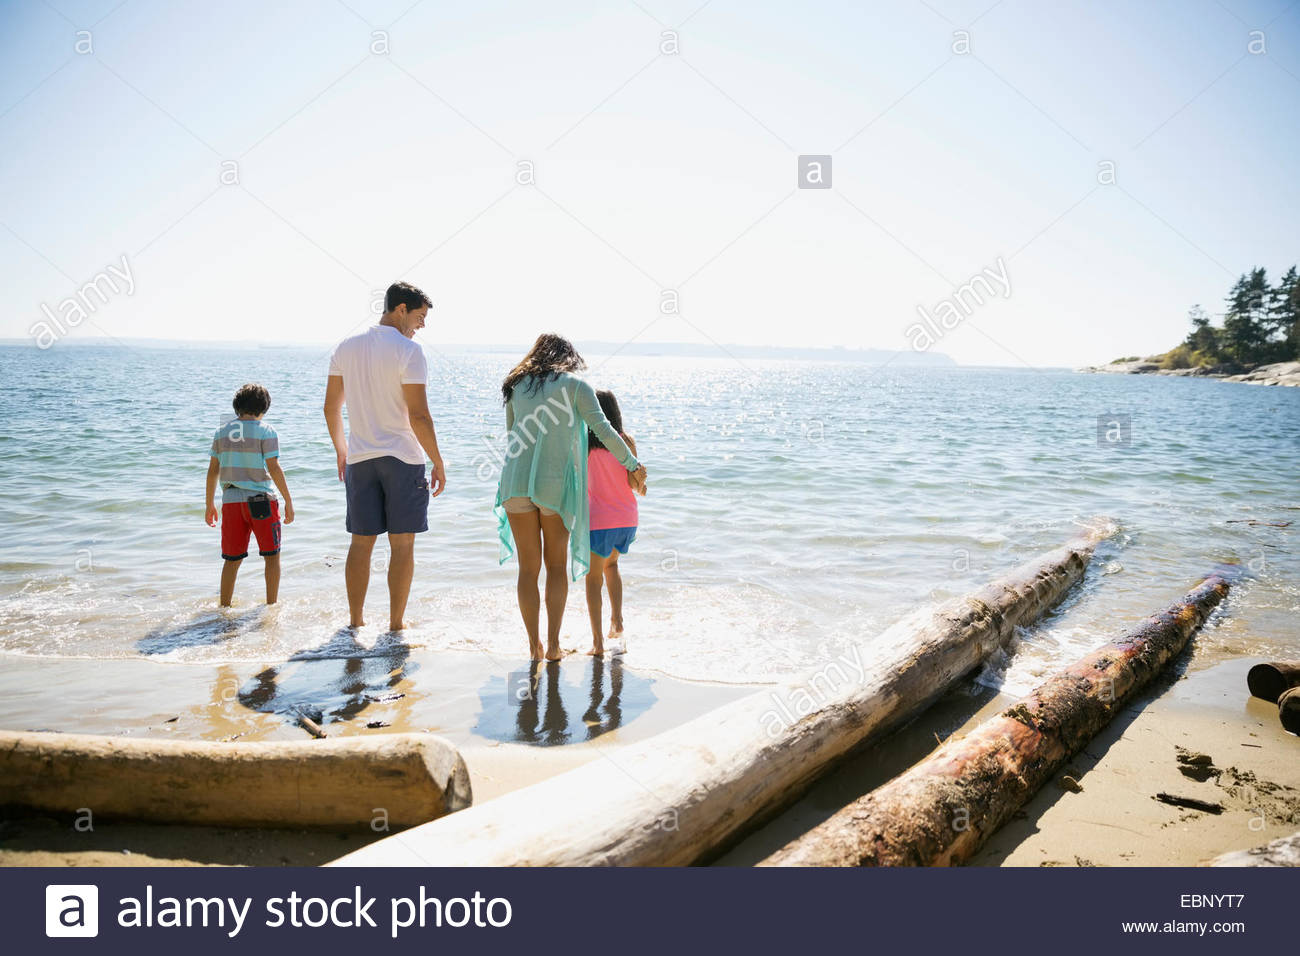 Family wading in ocean on sunny beach - Stock Image